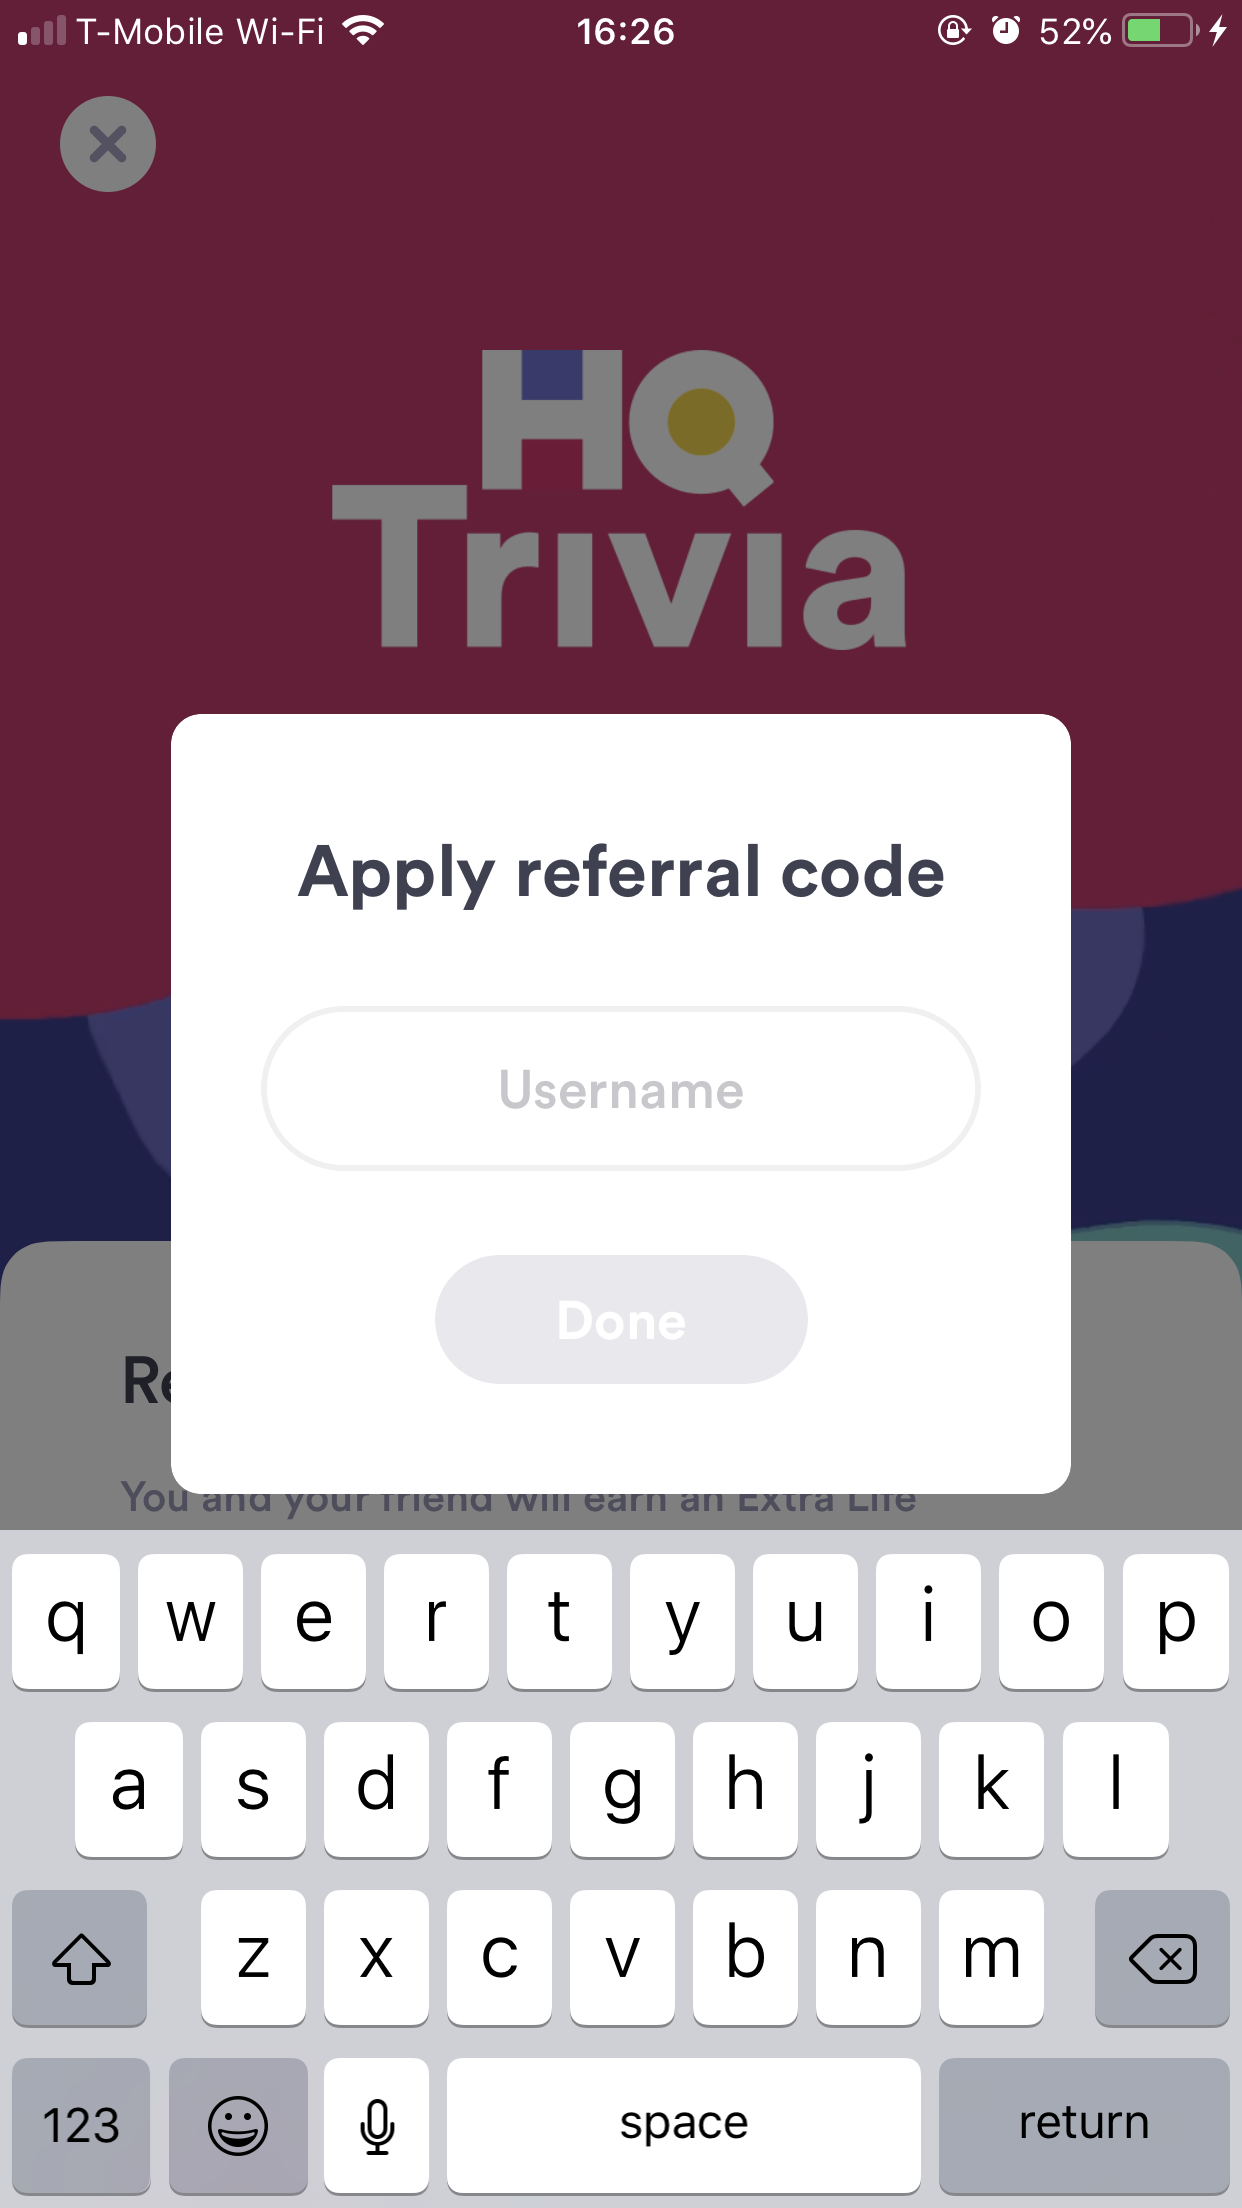 How do I add a referral code? – HQ Trivia